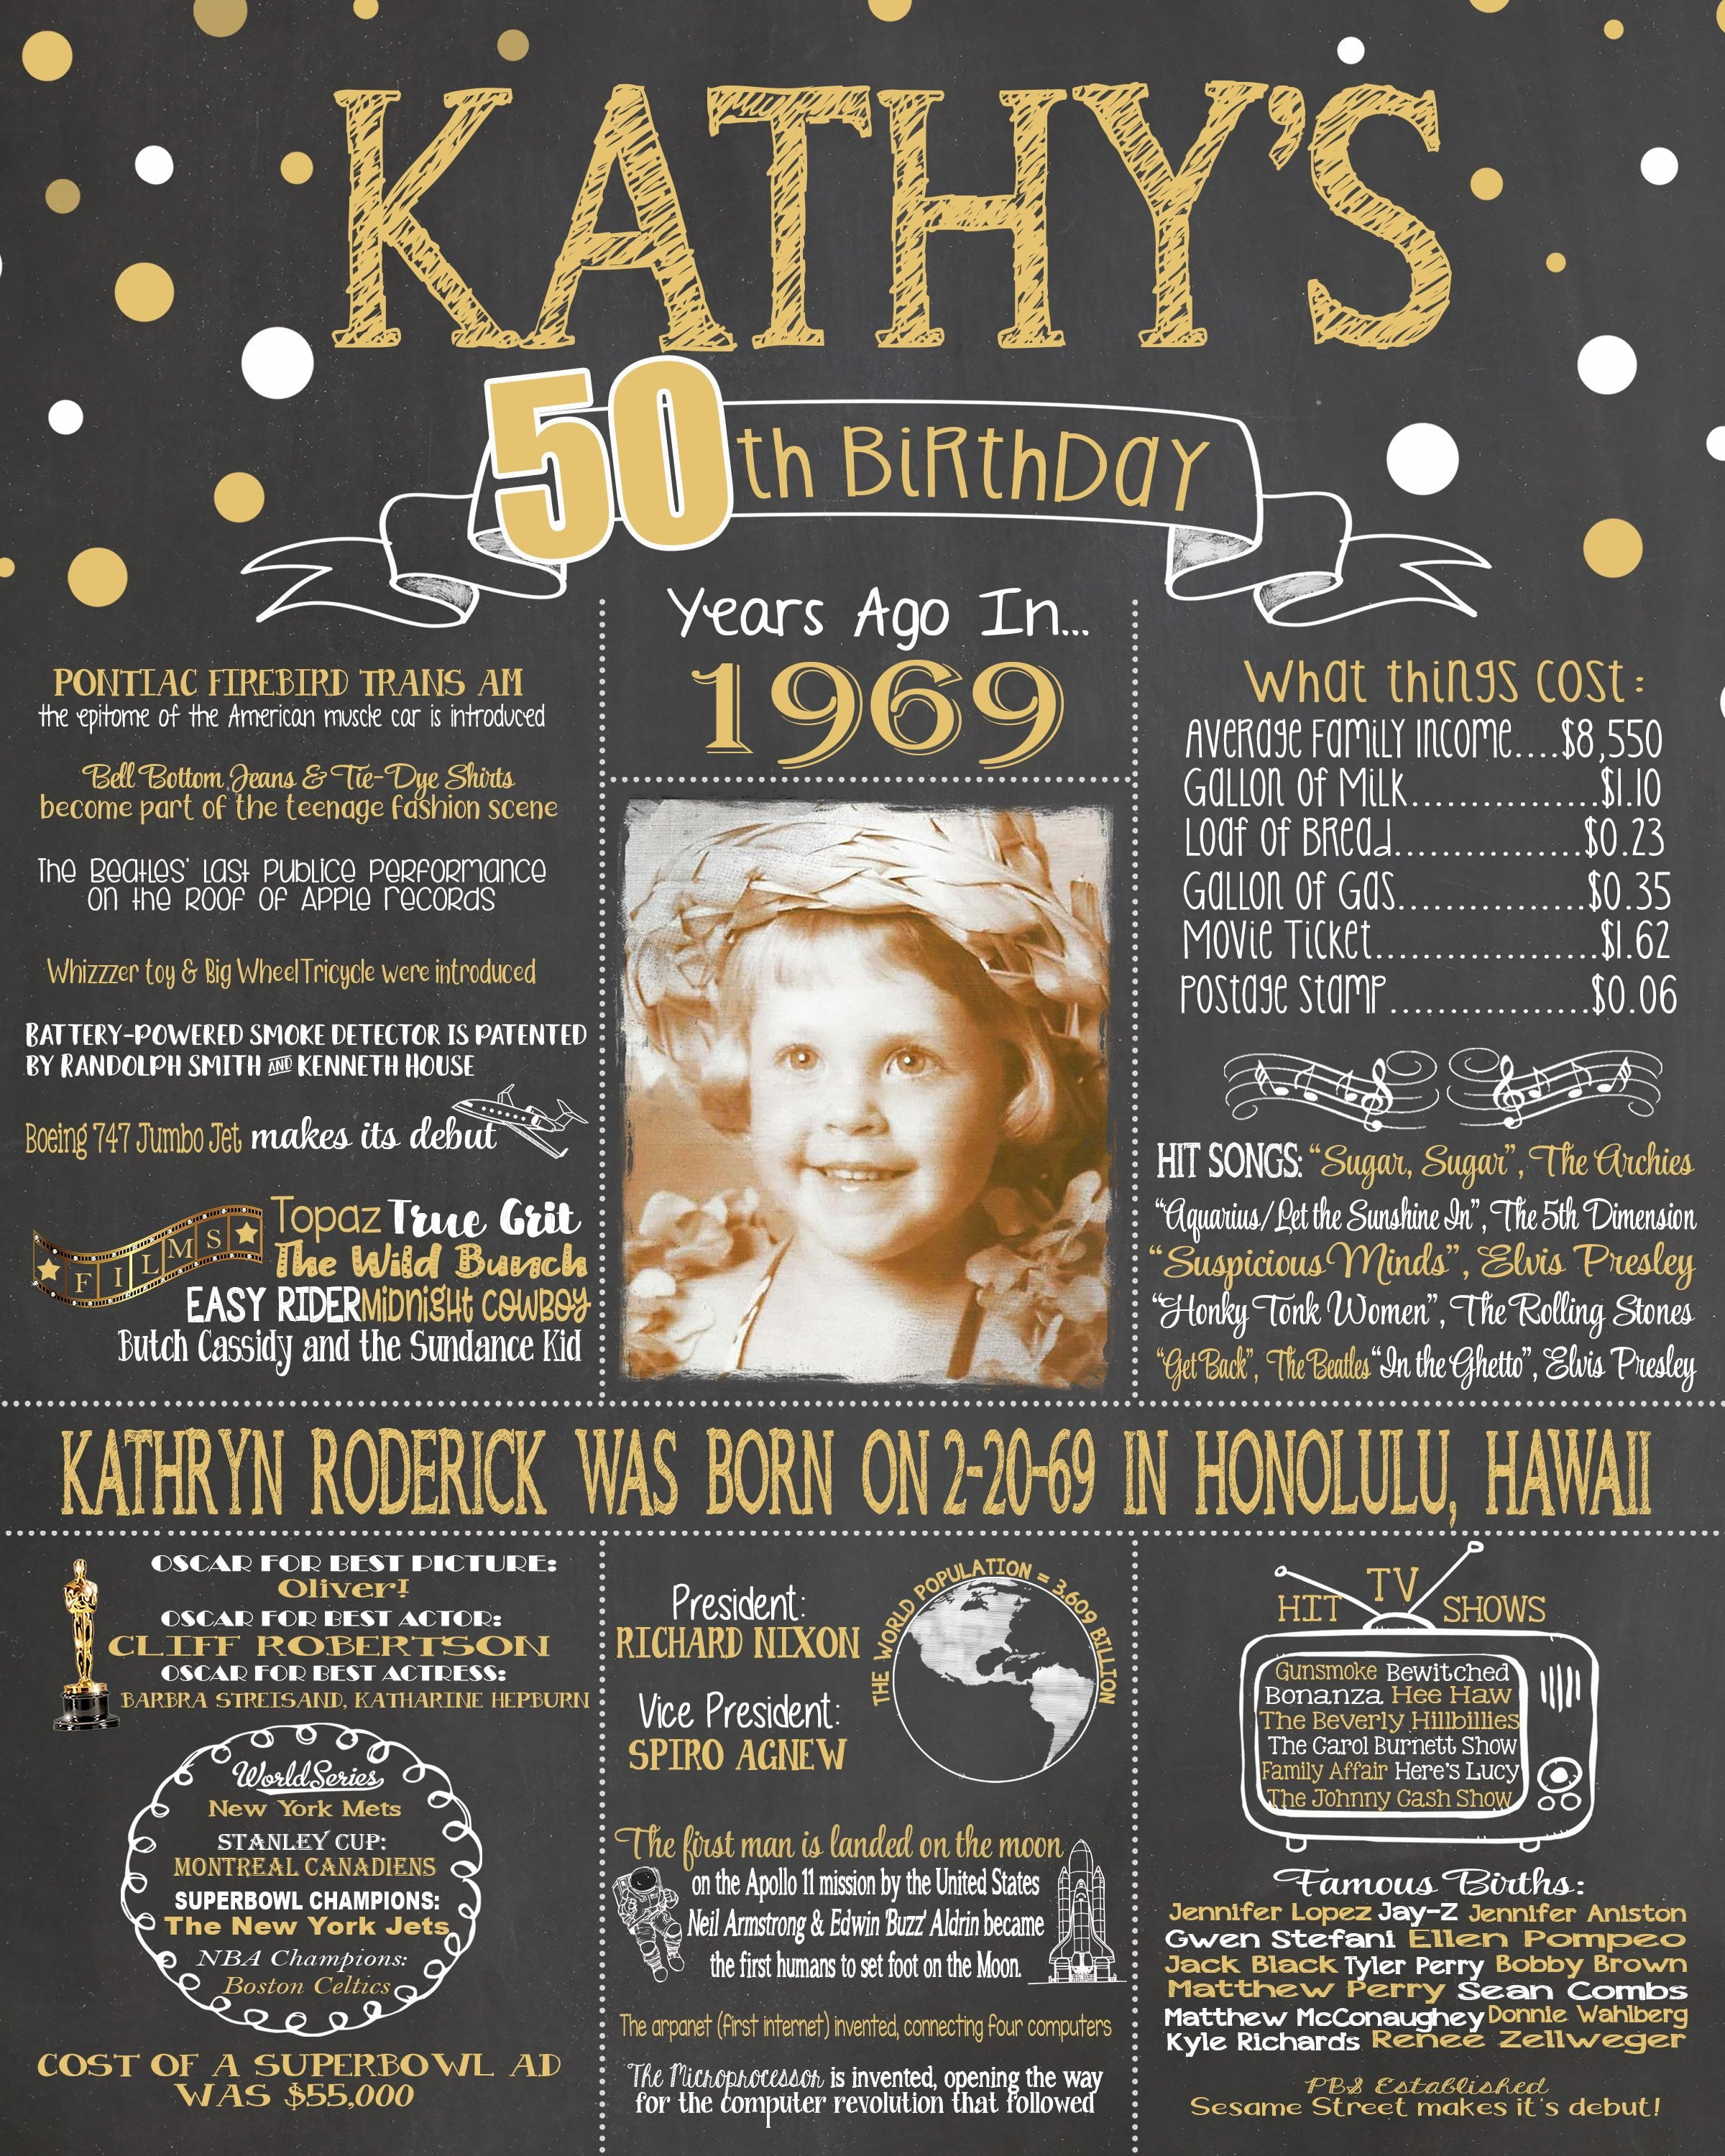 50th Birthday Sign Board For Birthday Gift Anniversary Board 50 Years Ago Poster Back In 1969 Birthday Poster with Photo 50th Birthday Gift